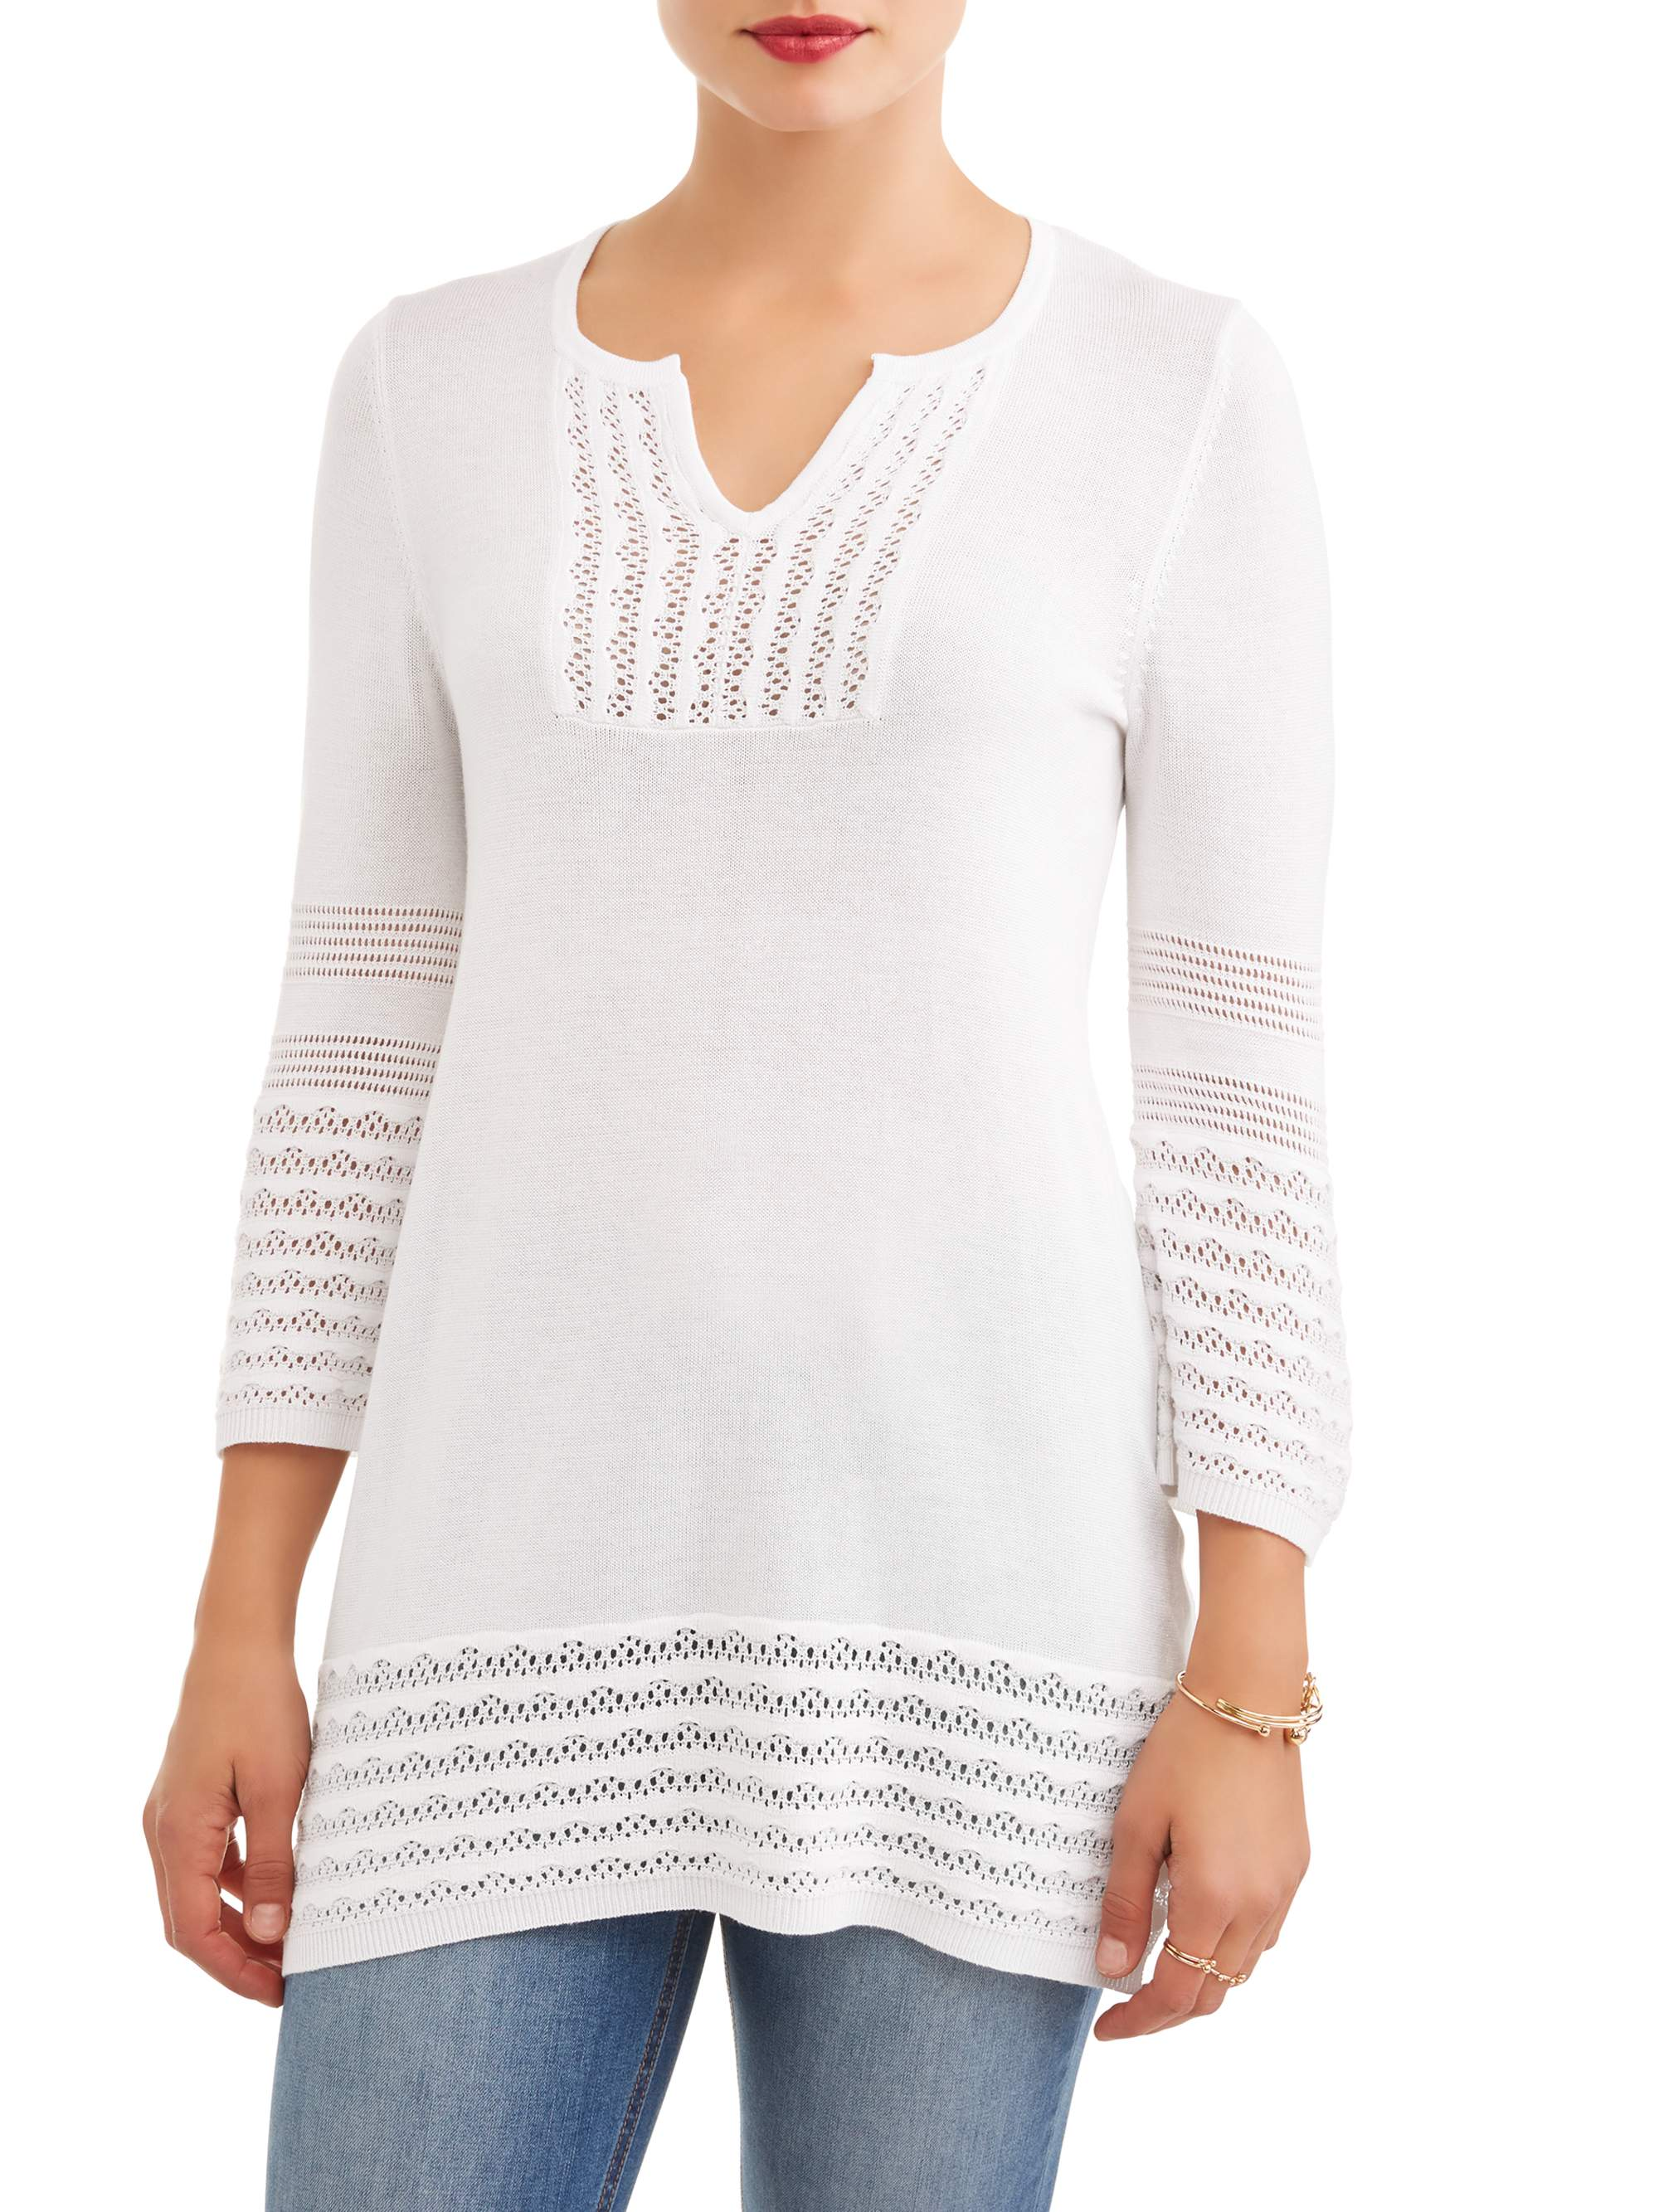 Women's Crochet Trim Tunic